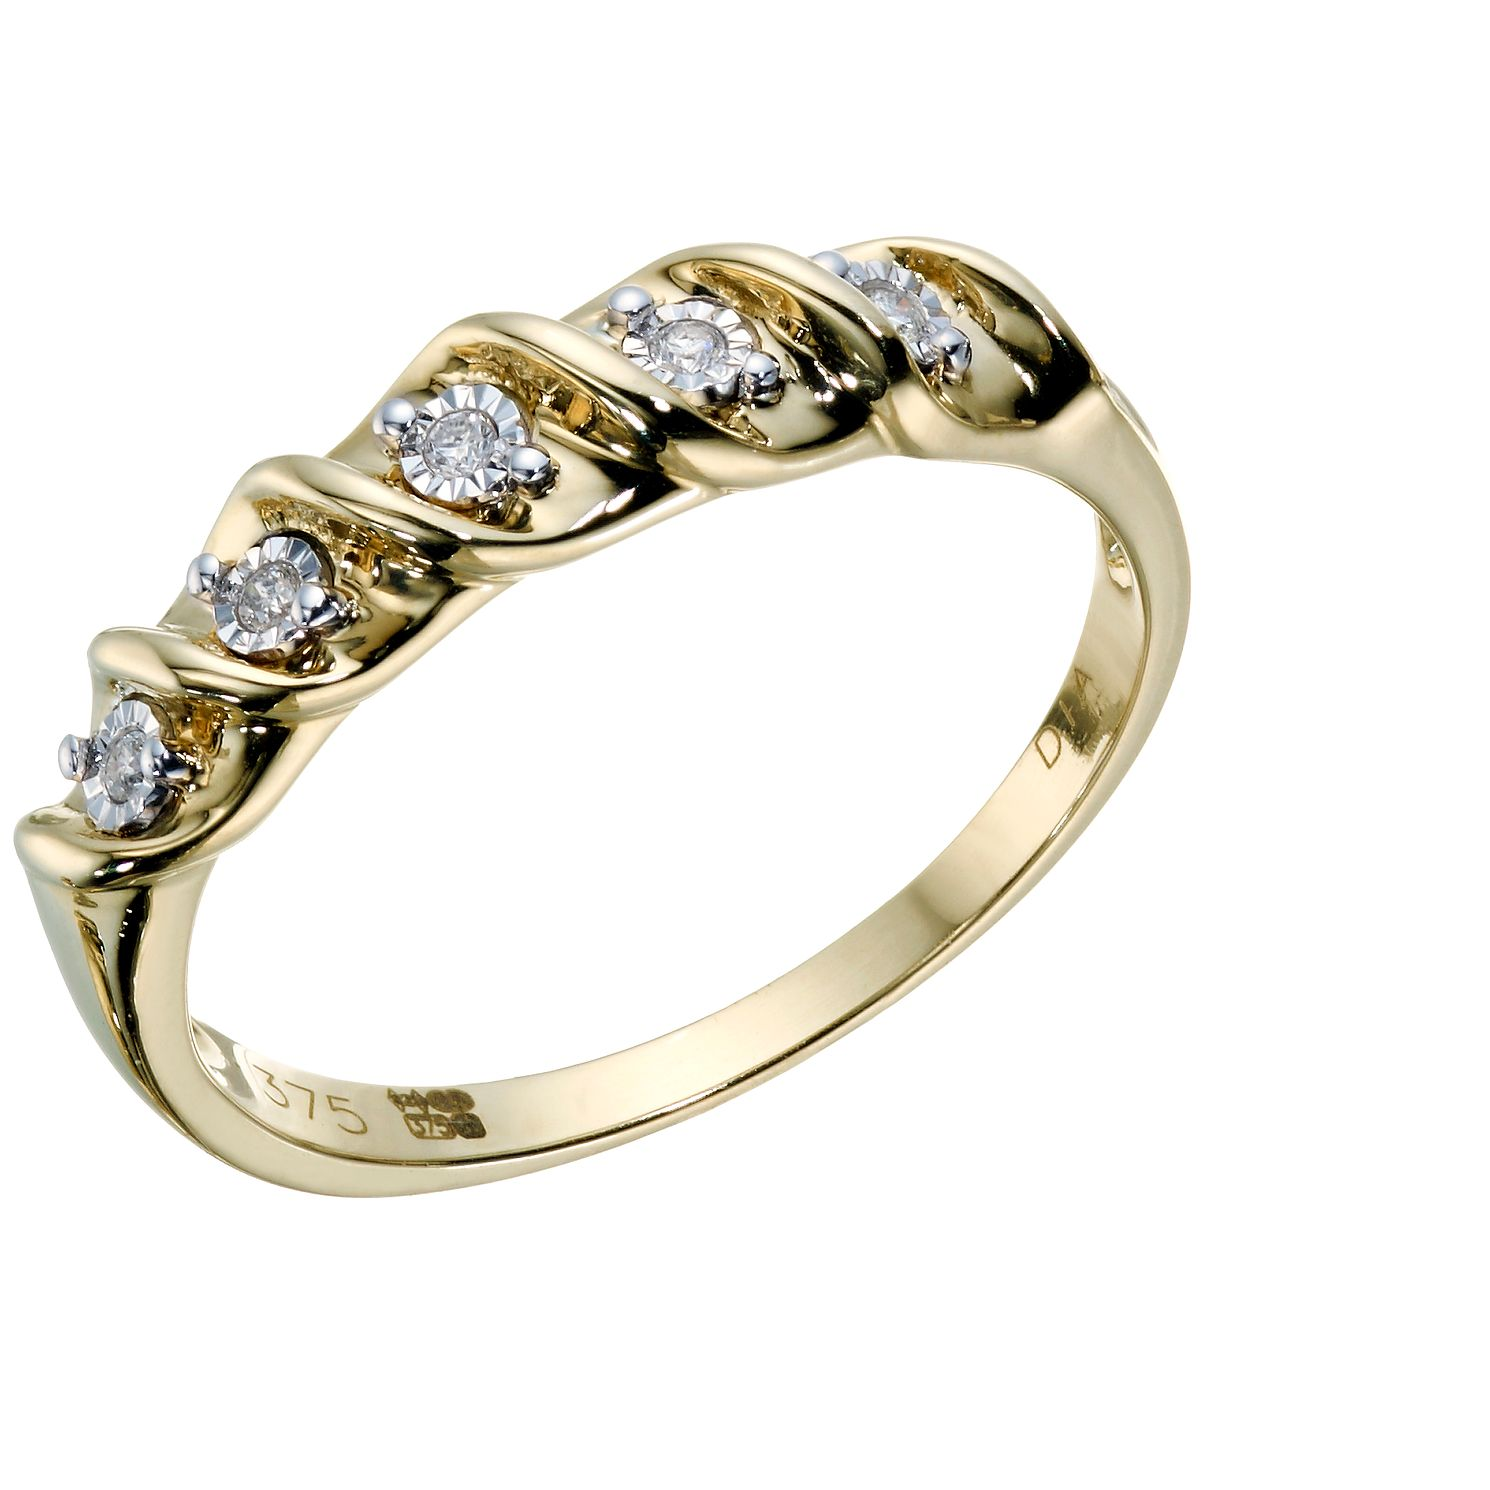 jewellery rings product diamond engagement ring stone victorian gold plaza